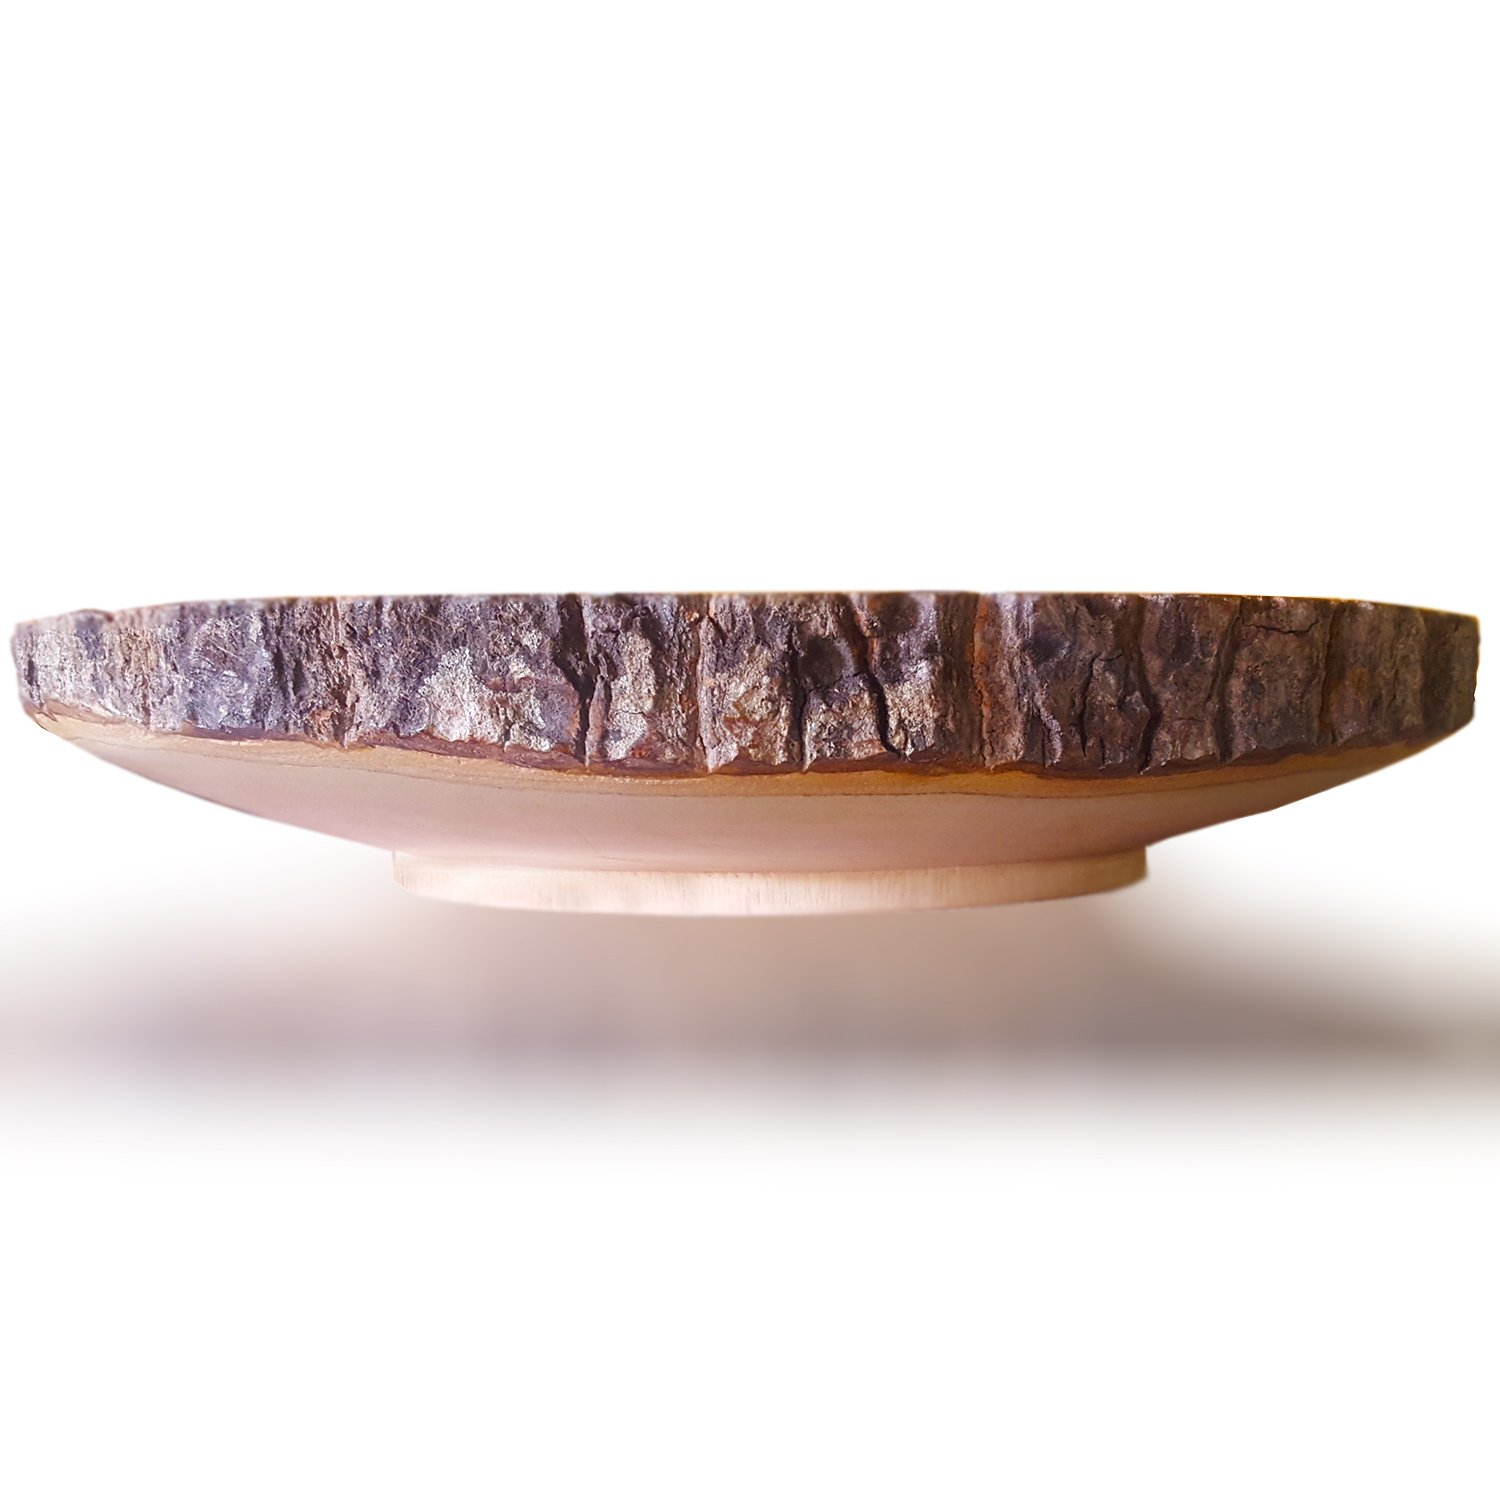 RoRo 12 Inch Handcarved Circular Wood Cake and Pie Stand Display with Bark